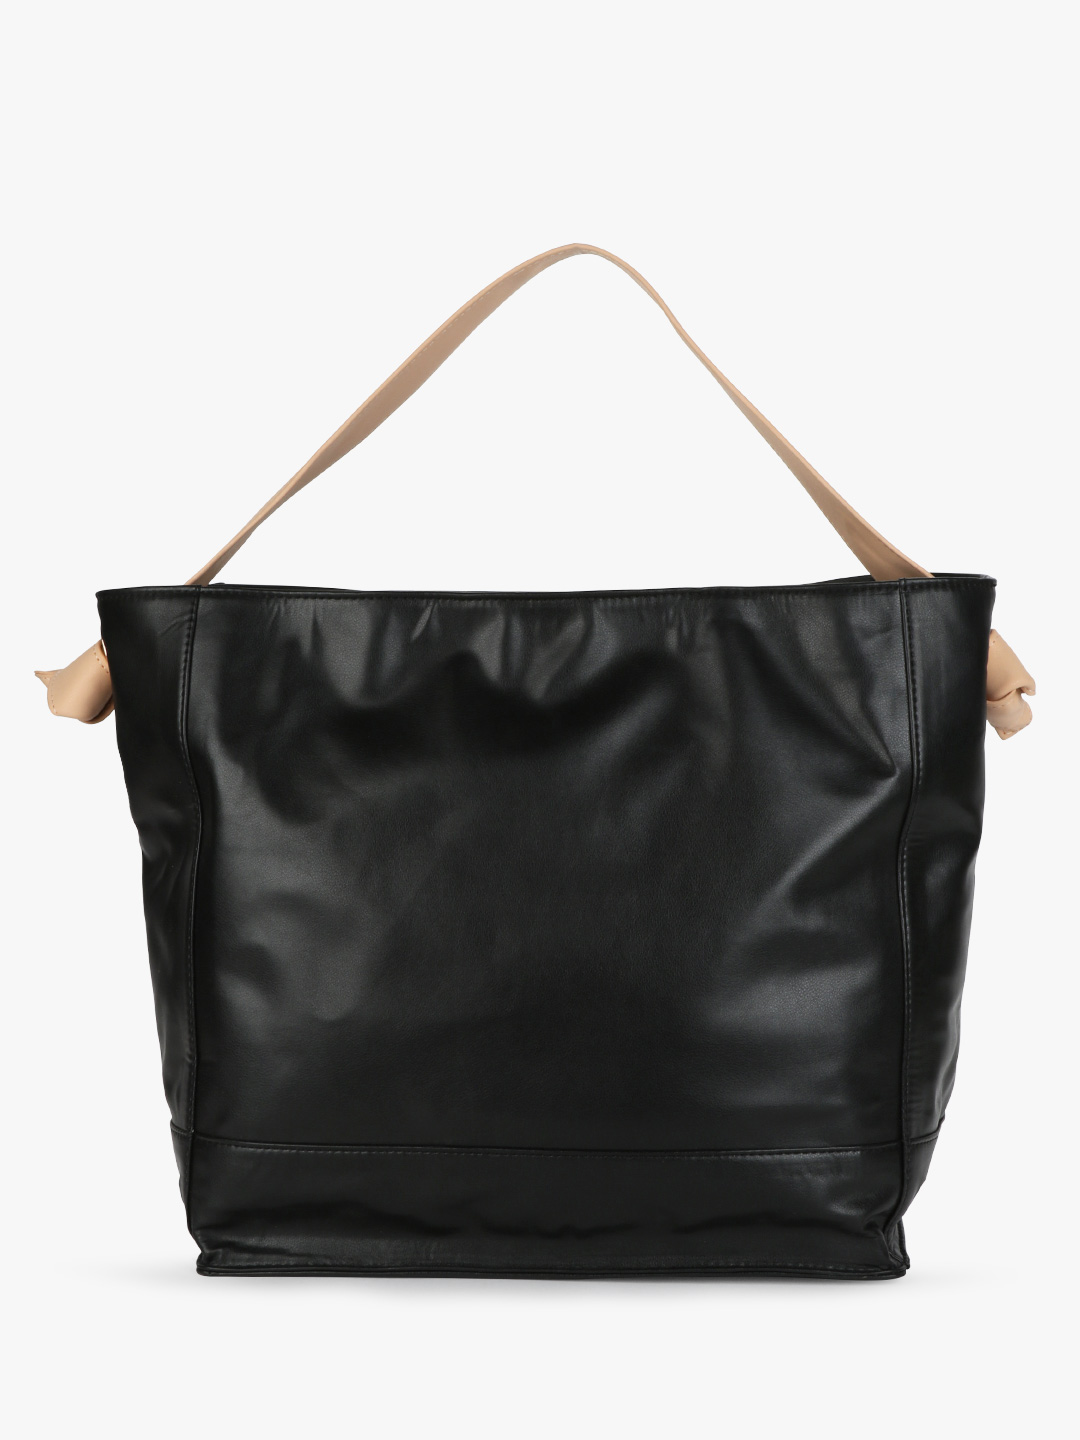 Paris Belle Black/Nude Basic Tote Bag With Knotted Strap 1